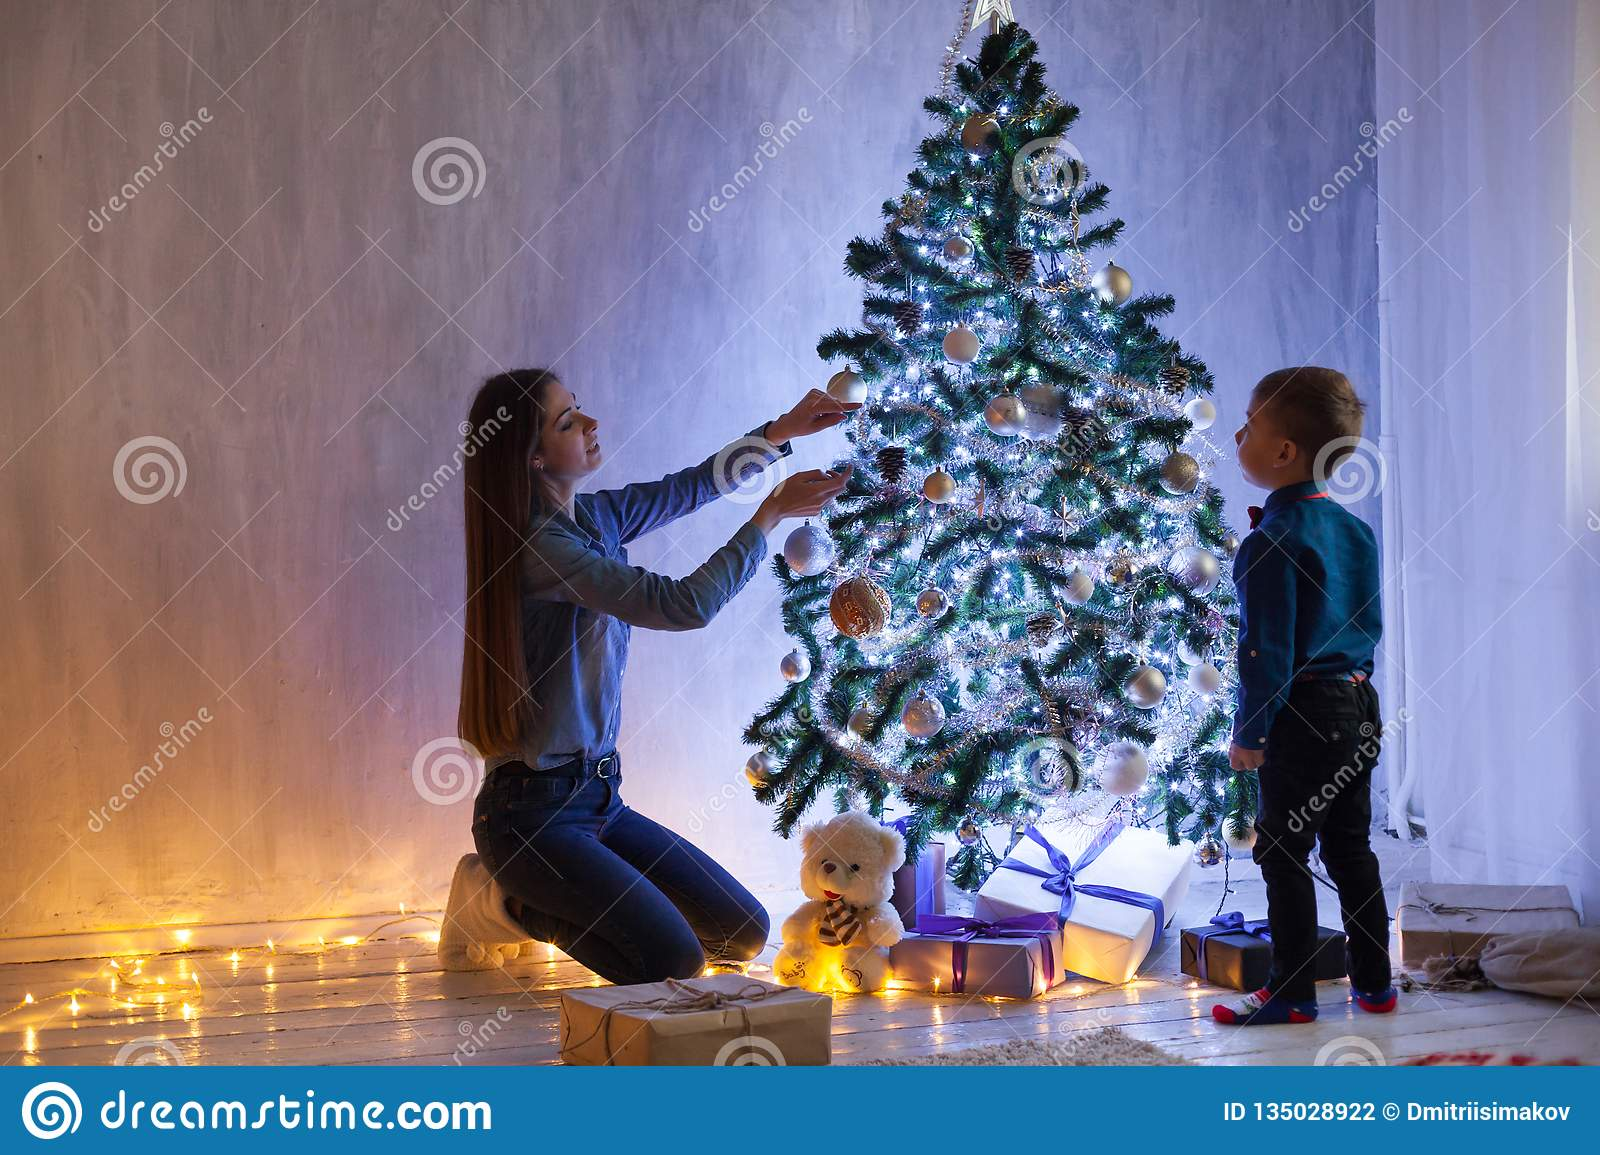 Mother And Son Dinner At Christmas Garland Lights New Year Gifts